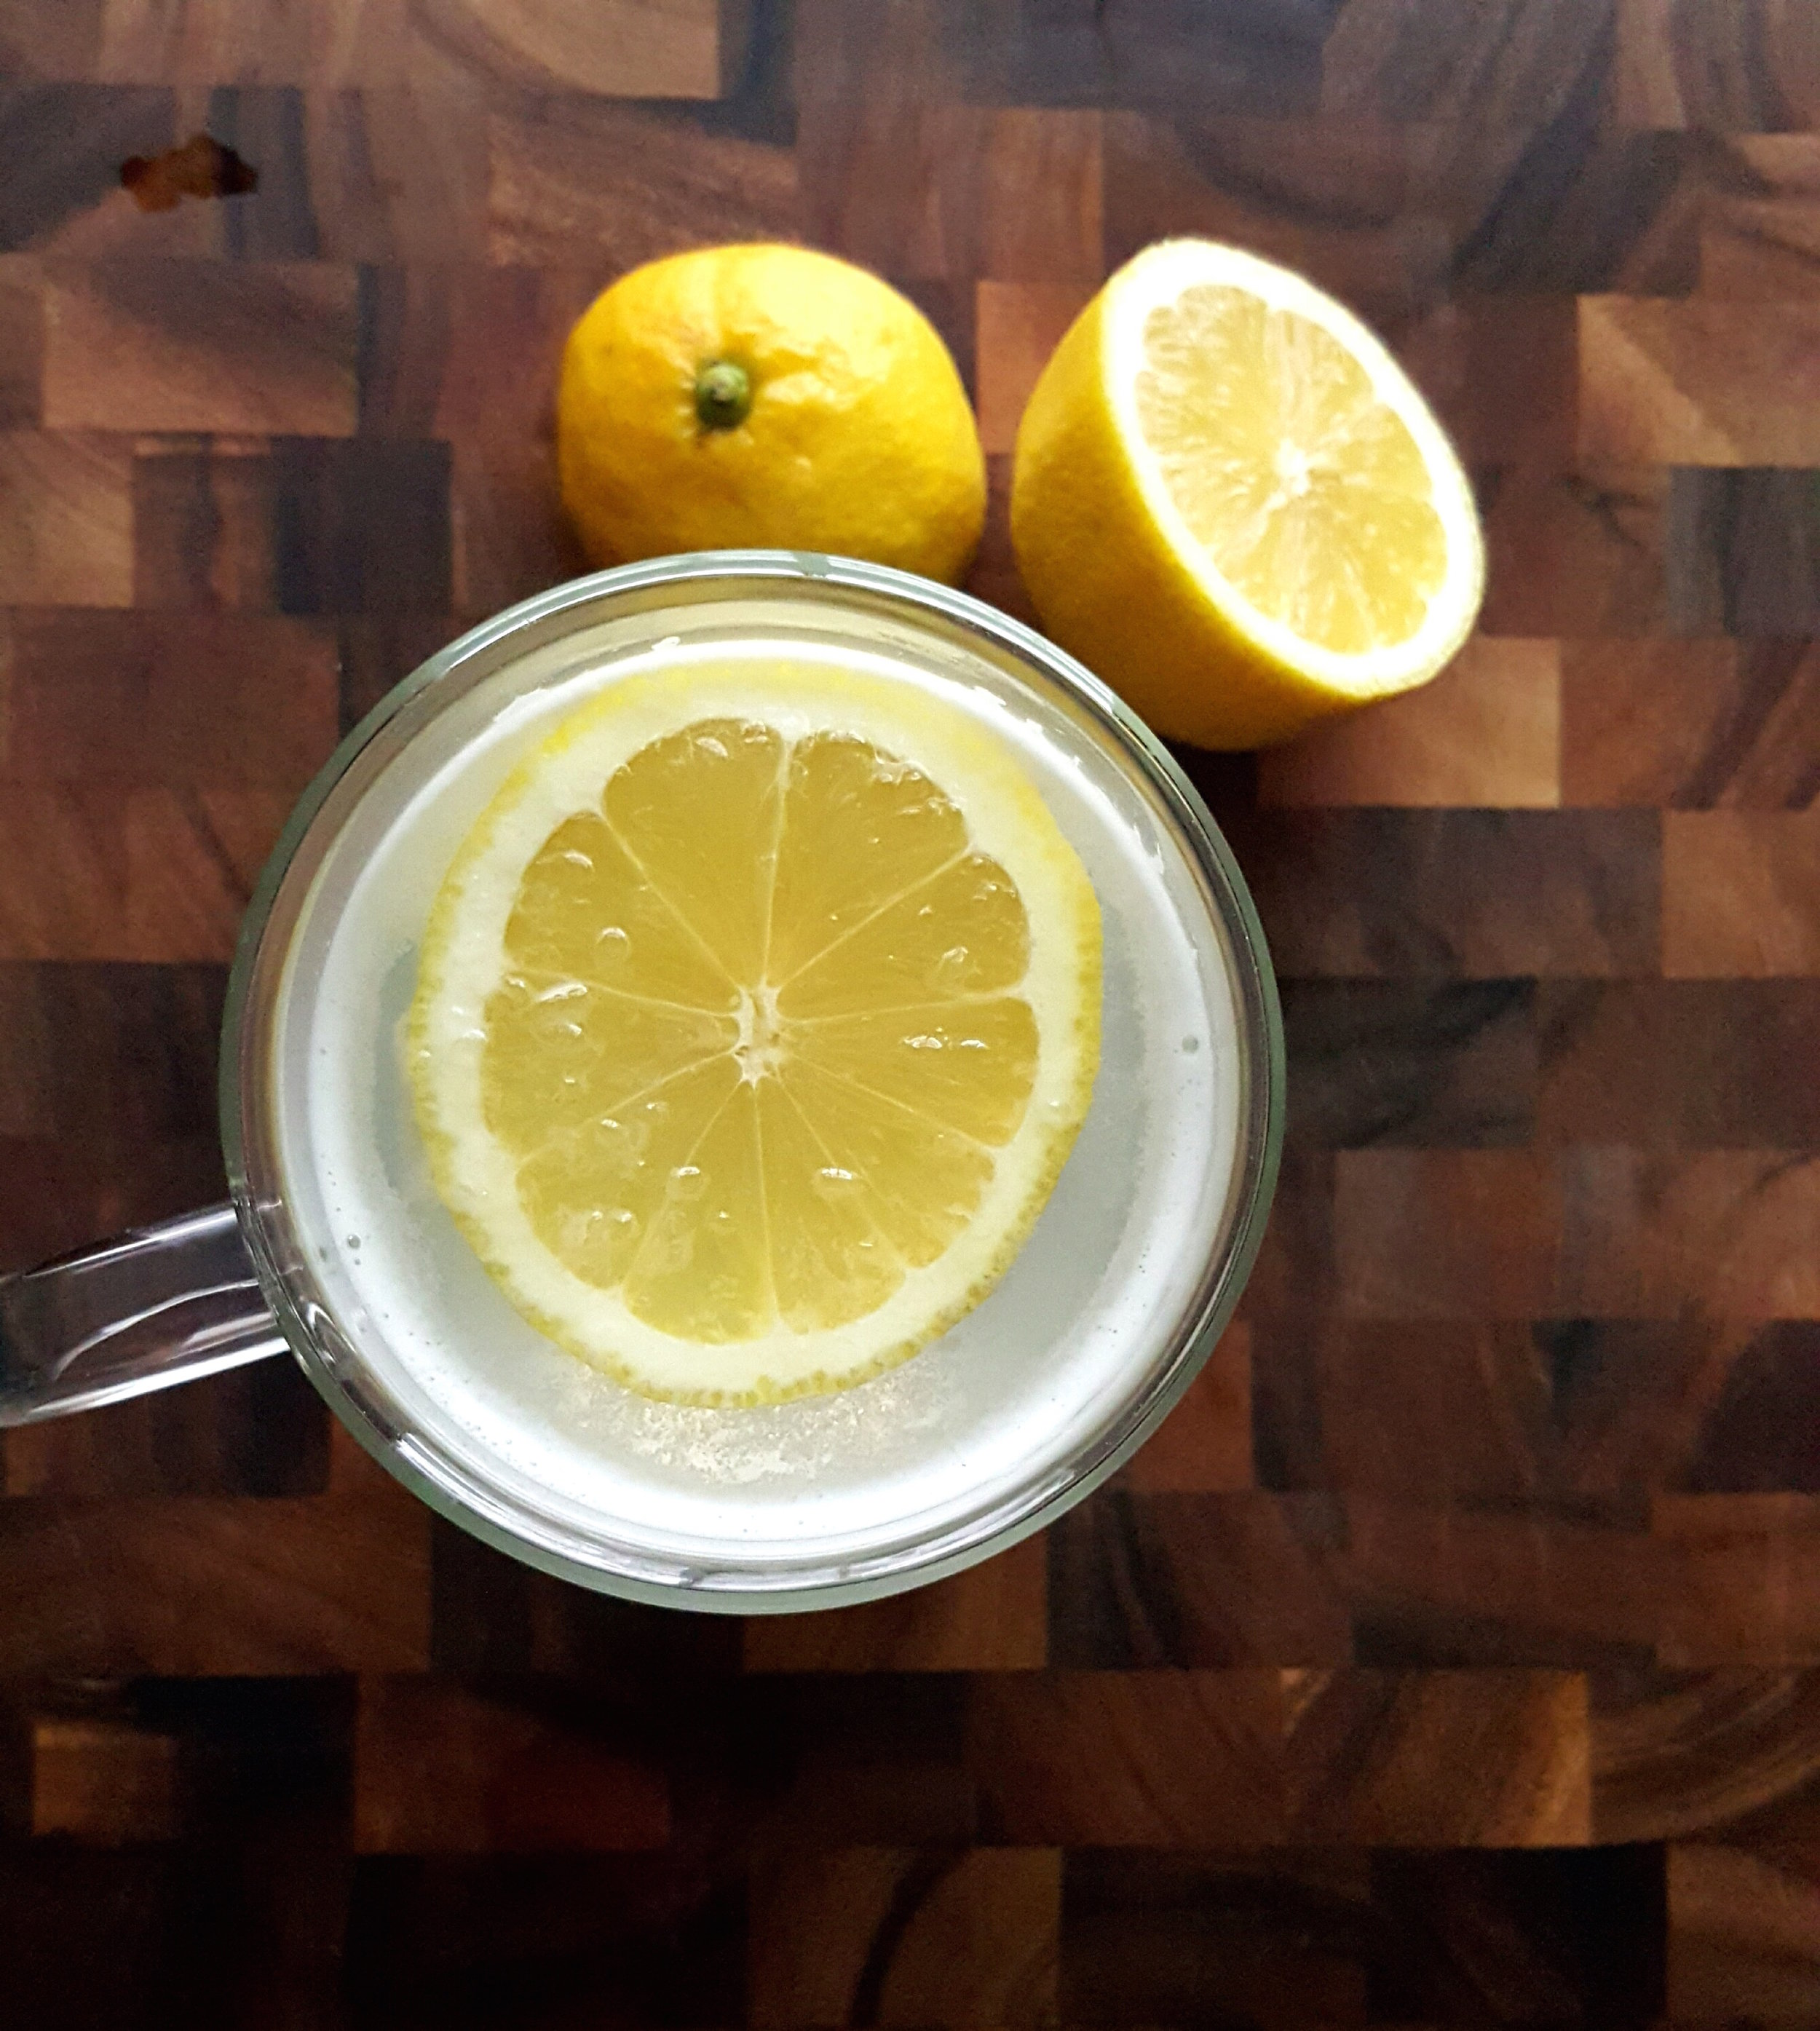 - ingredients:-8-12 oz. boiling water-juice squeezed from ½ lemon-1 clove of garlic-1 inch piece of ginger root-1-2 tsp raw honey-pinch cayenne peppermake it:-bring water to a boil, set aside and allow to cool slightly-using a sharp knife, pierce the garlic clove a few times. Do the same with the ginger. Add both to a tea steeper placed in a mug,along with a pinch of cayenne pepper. Pour boiling water over top and let steep for 5 minutes.-remove the steeper, squeeze in lemon juice and add the honey.Stir well to combine and enjoy!Note: it's important to let the boiled water cool slightly before pouring over your ingredients, otherwise the heat will destroy a lot of the beneficial properties!